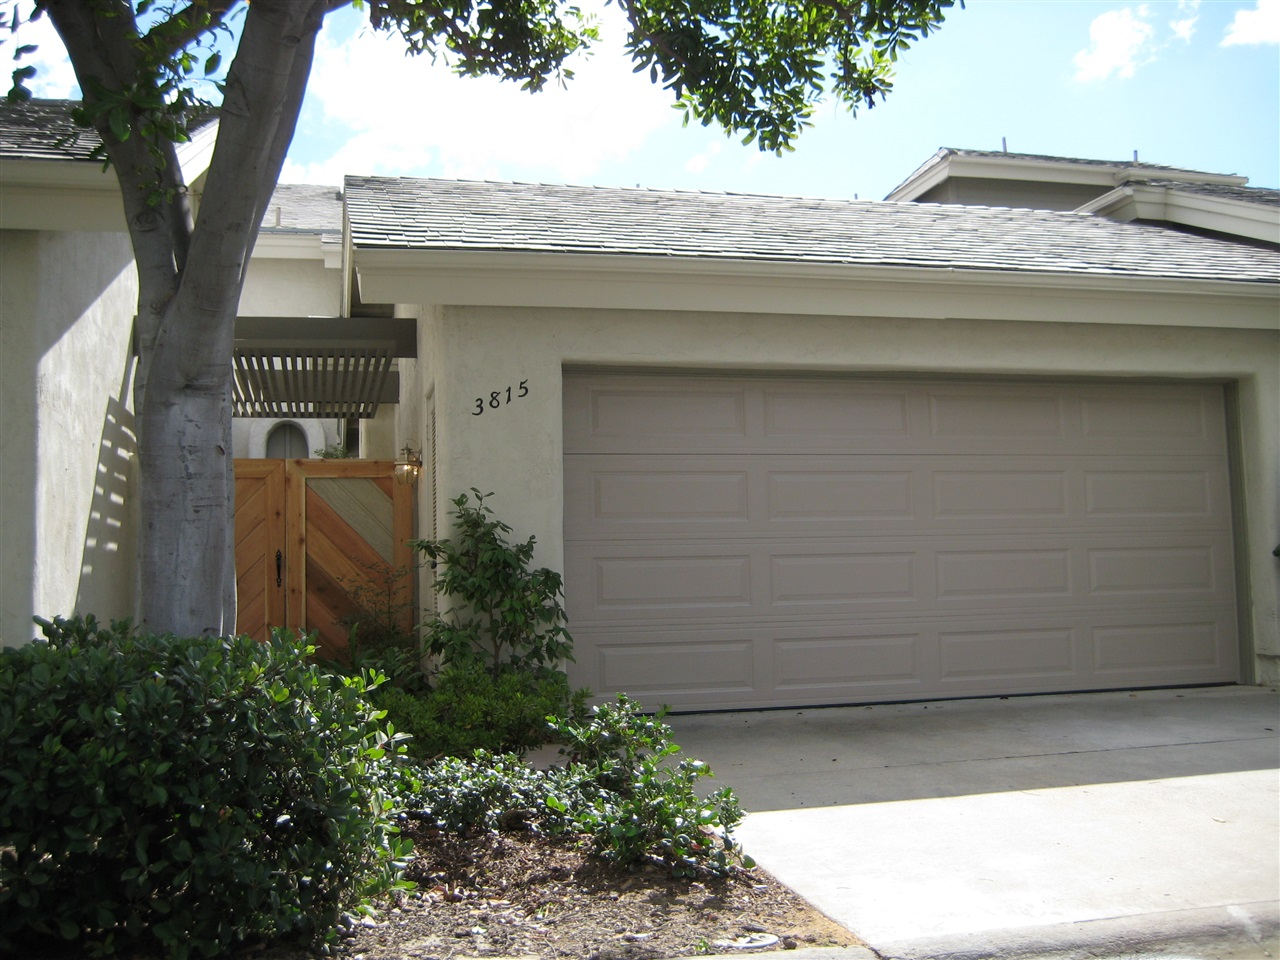 Main Photo: RANCHO SANTA FE Condo for rent : 3 bedrooms : 3815 Via Pasatiempo